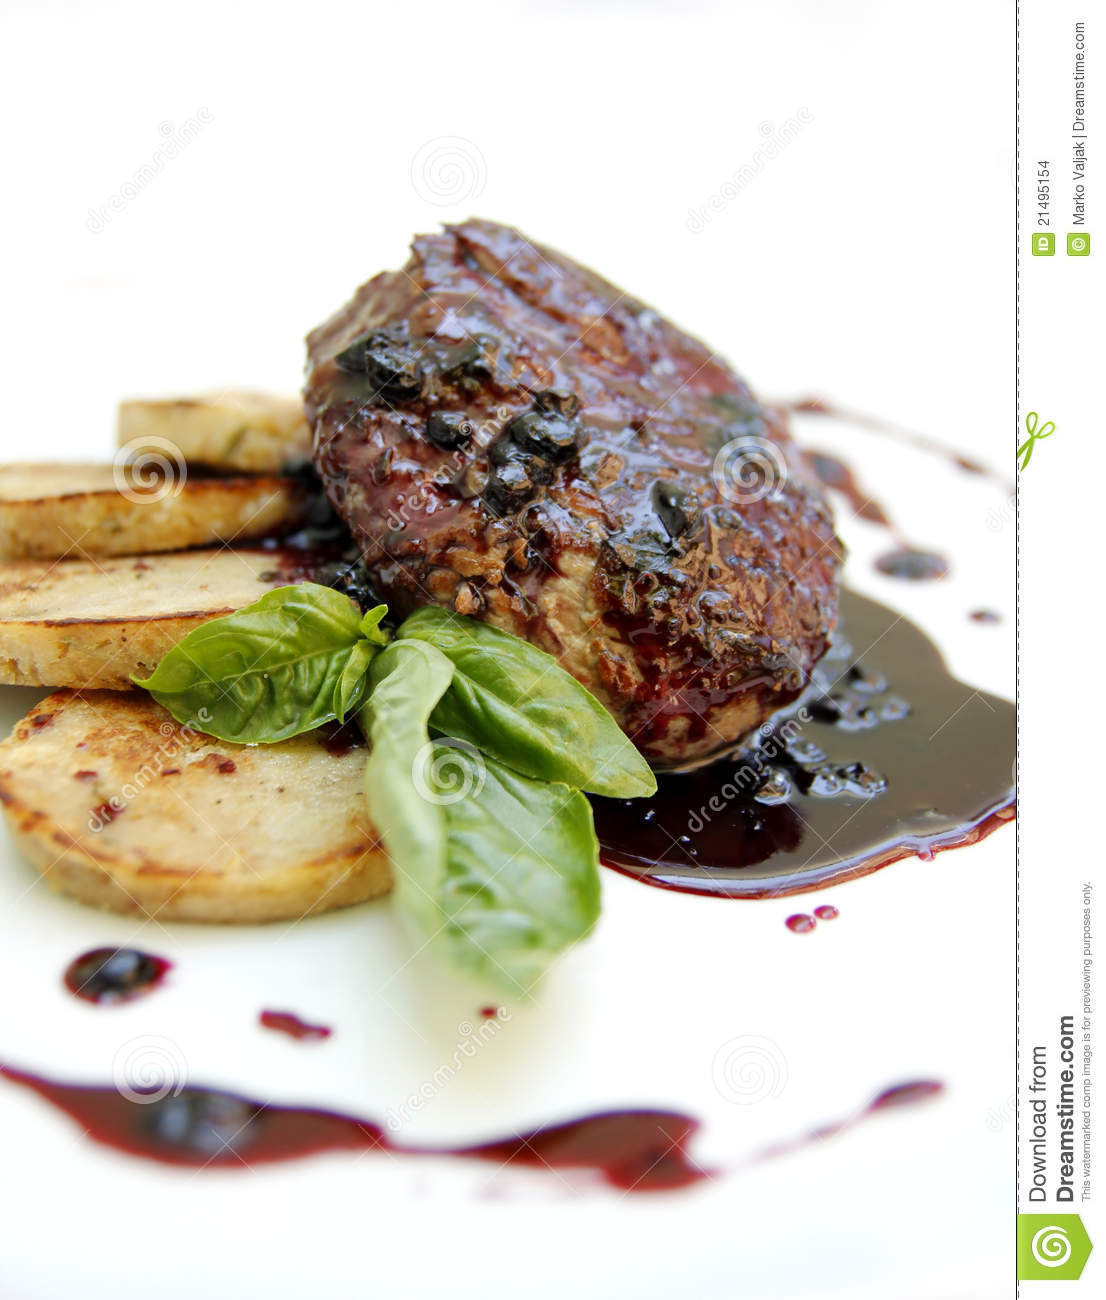 Steak On Plate Stock Images - Image: 21495154